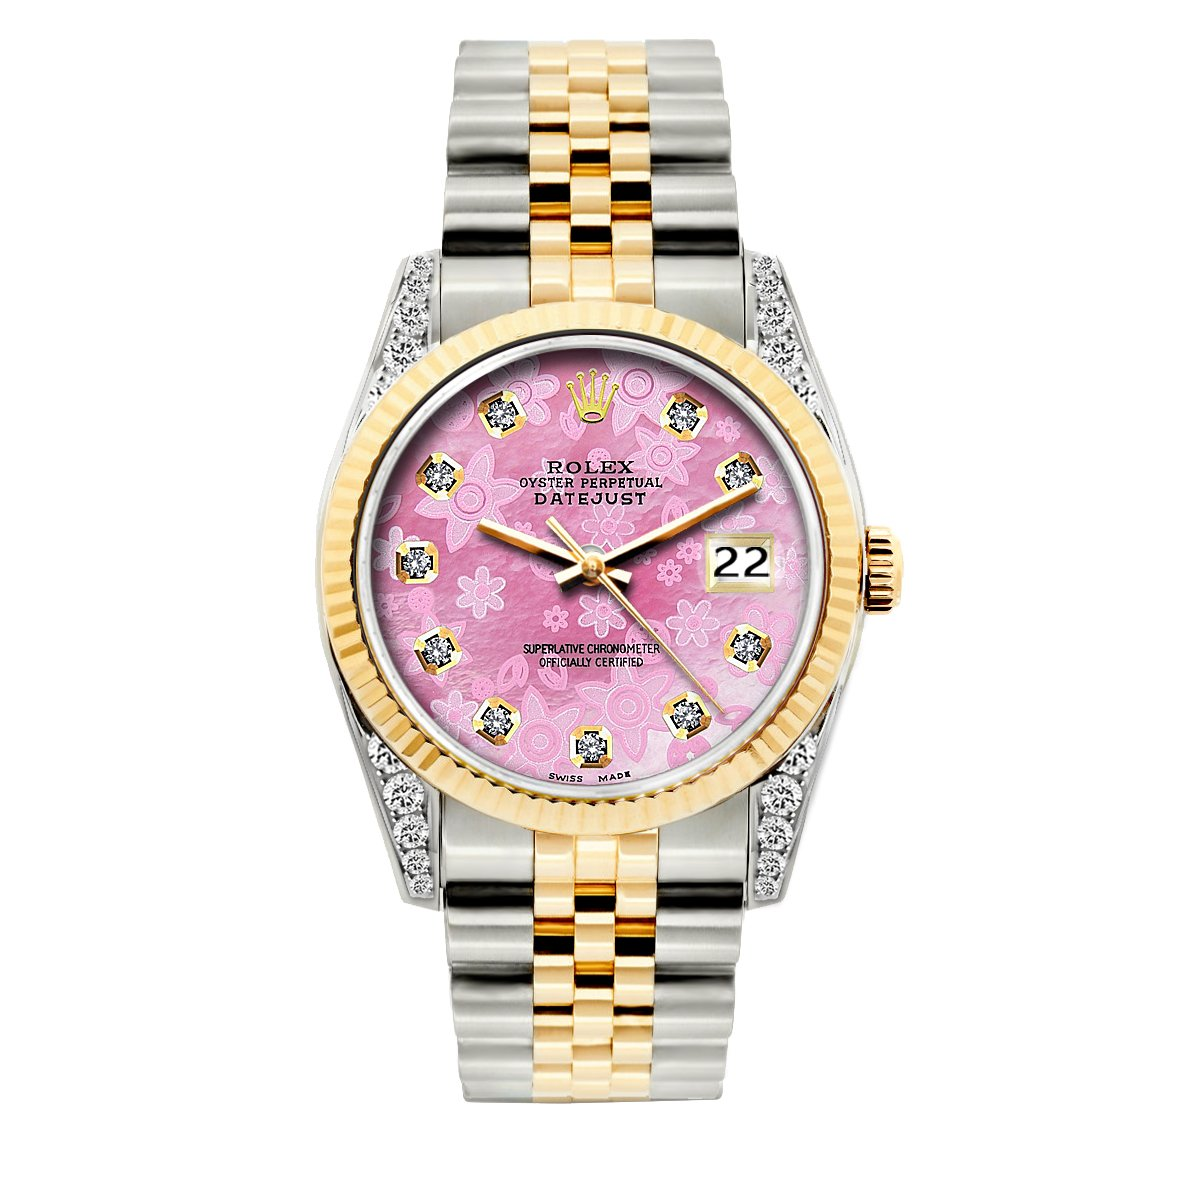 Rolex Datejust Diamond Watch, 36mm, Yellow Gold and Stainless Steel Bracelet Pink Flower Dial w/ Diamond Lugs